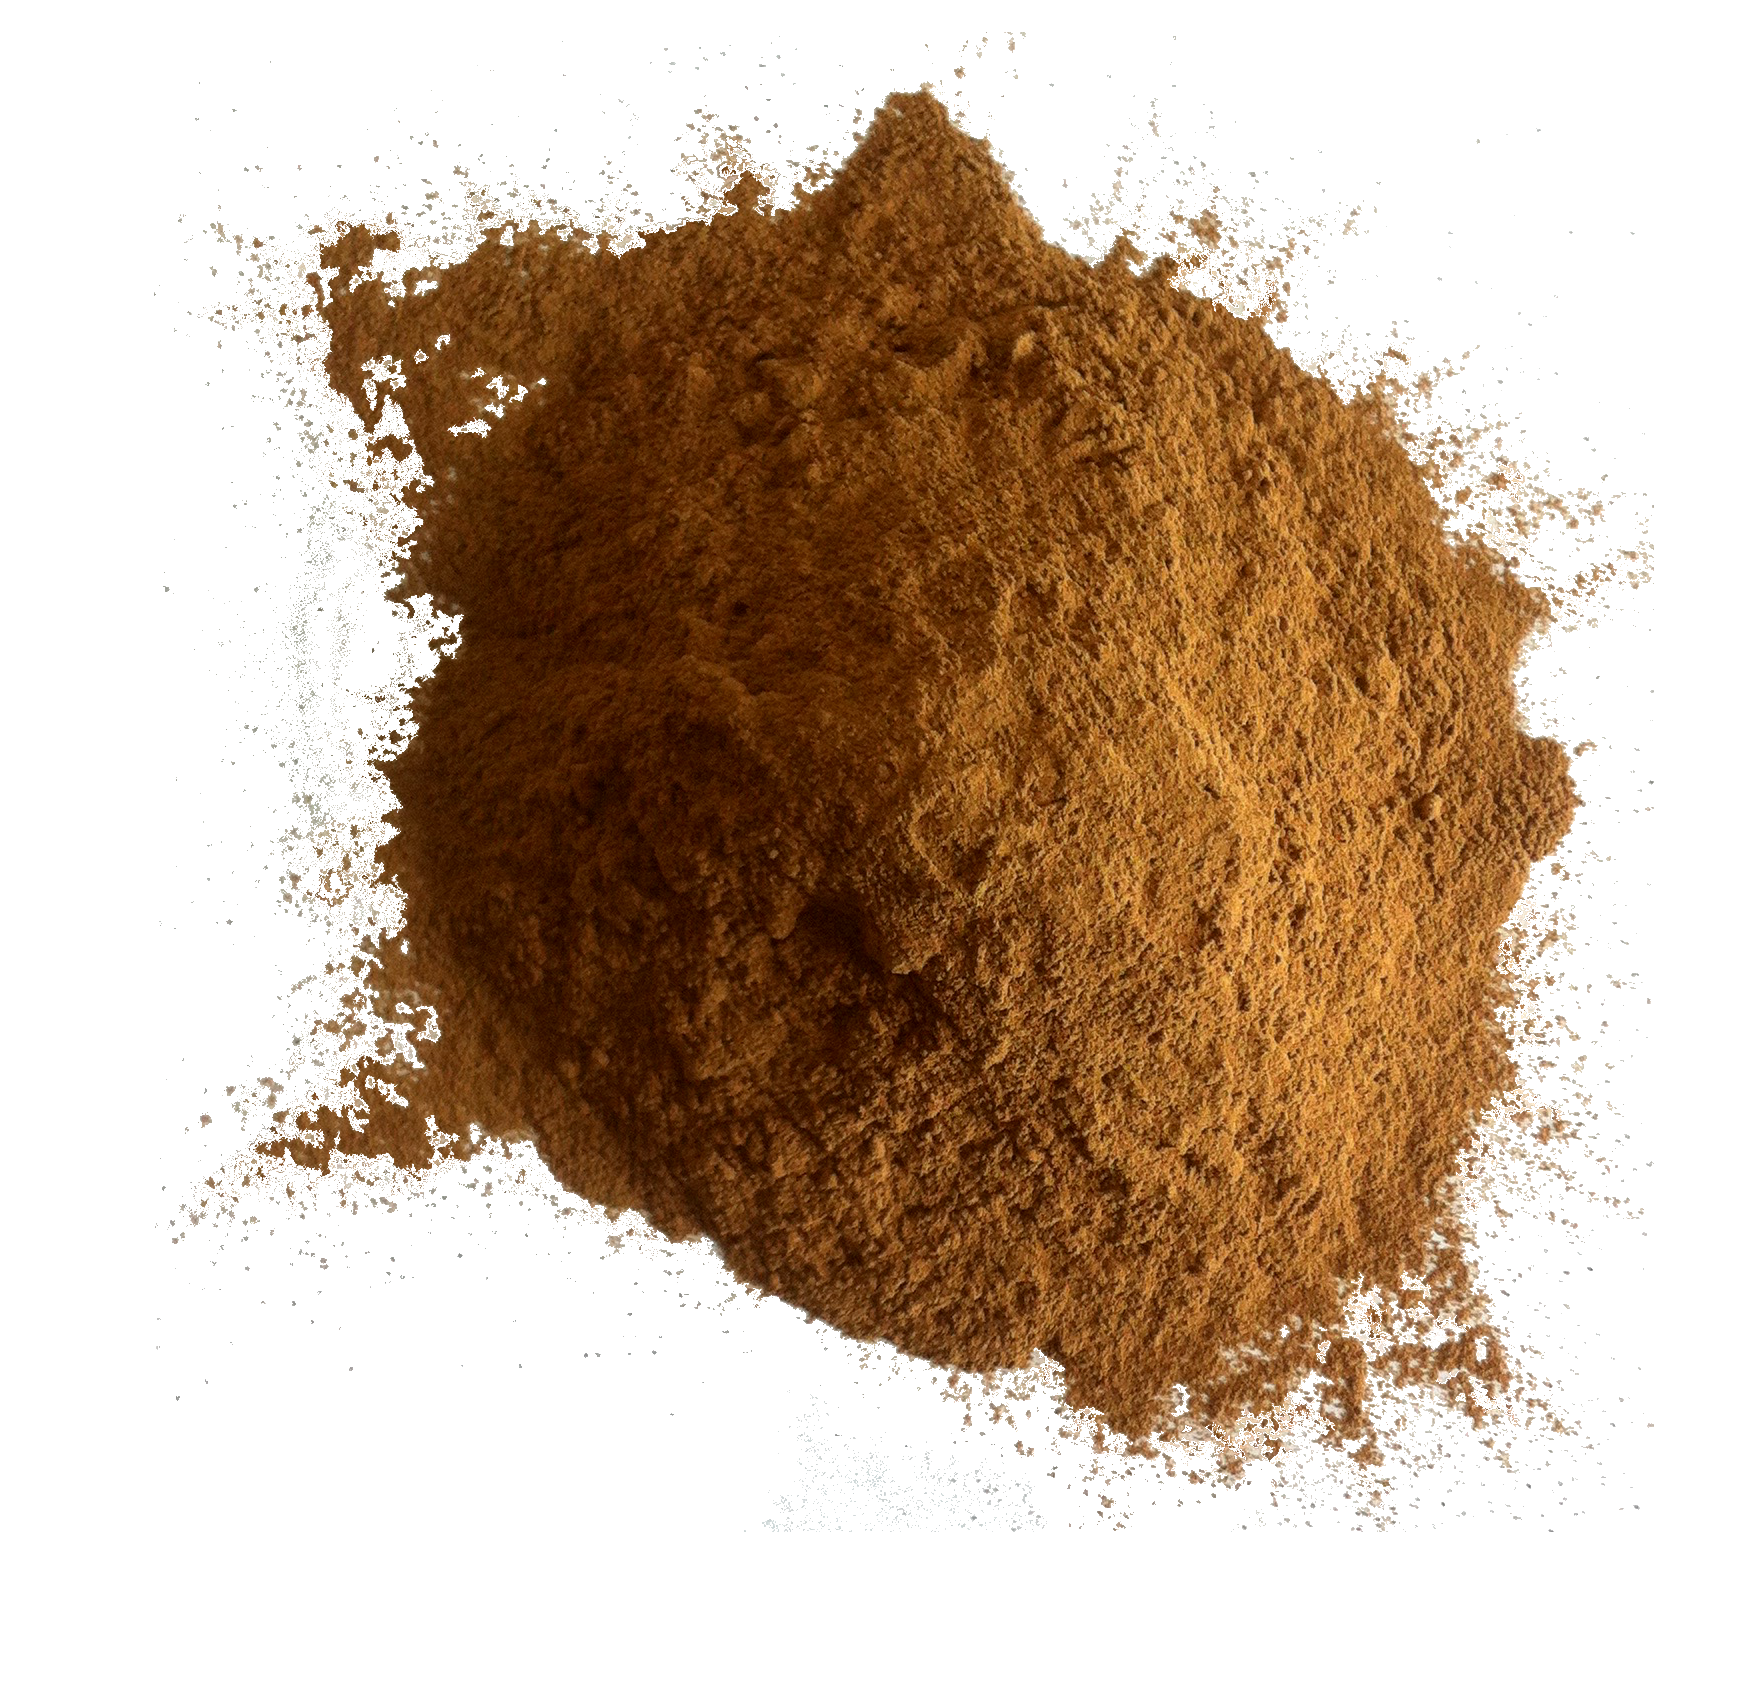 Medium Roast Maya Powder is best for adding a nutty mocha flavor & all Maya's important nutrients to smoothies, shakes or baked goods